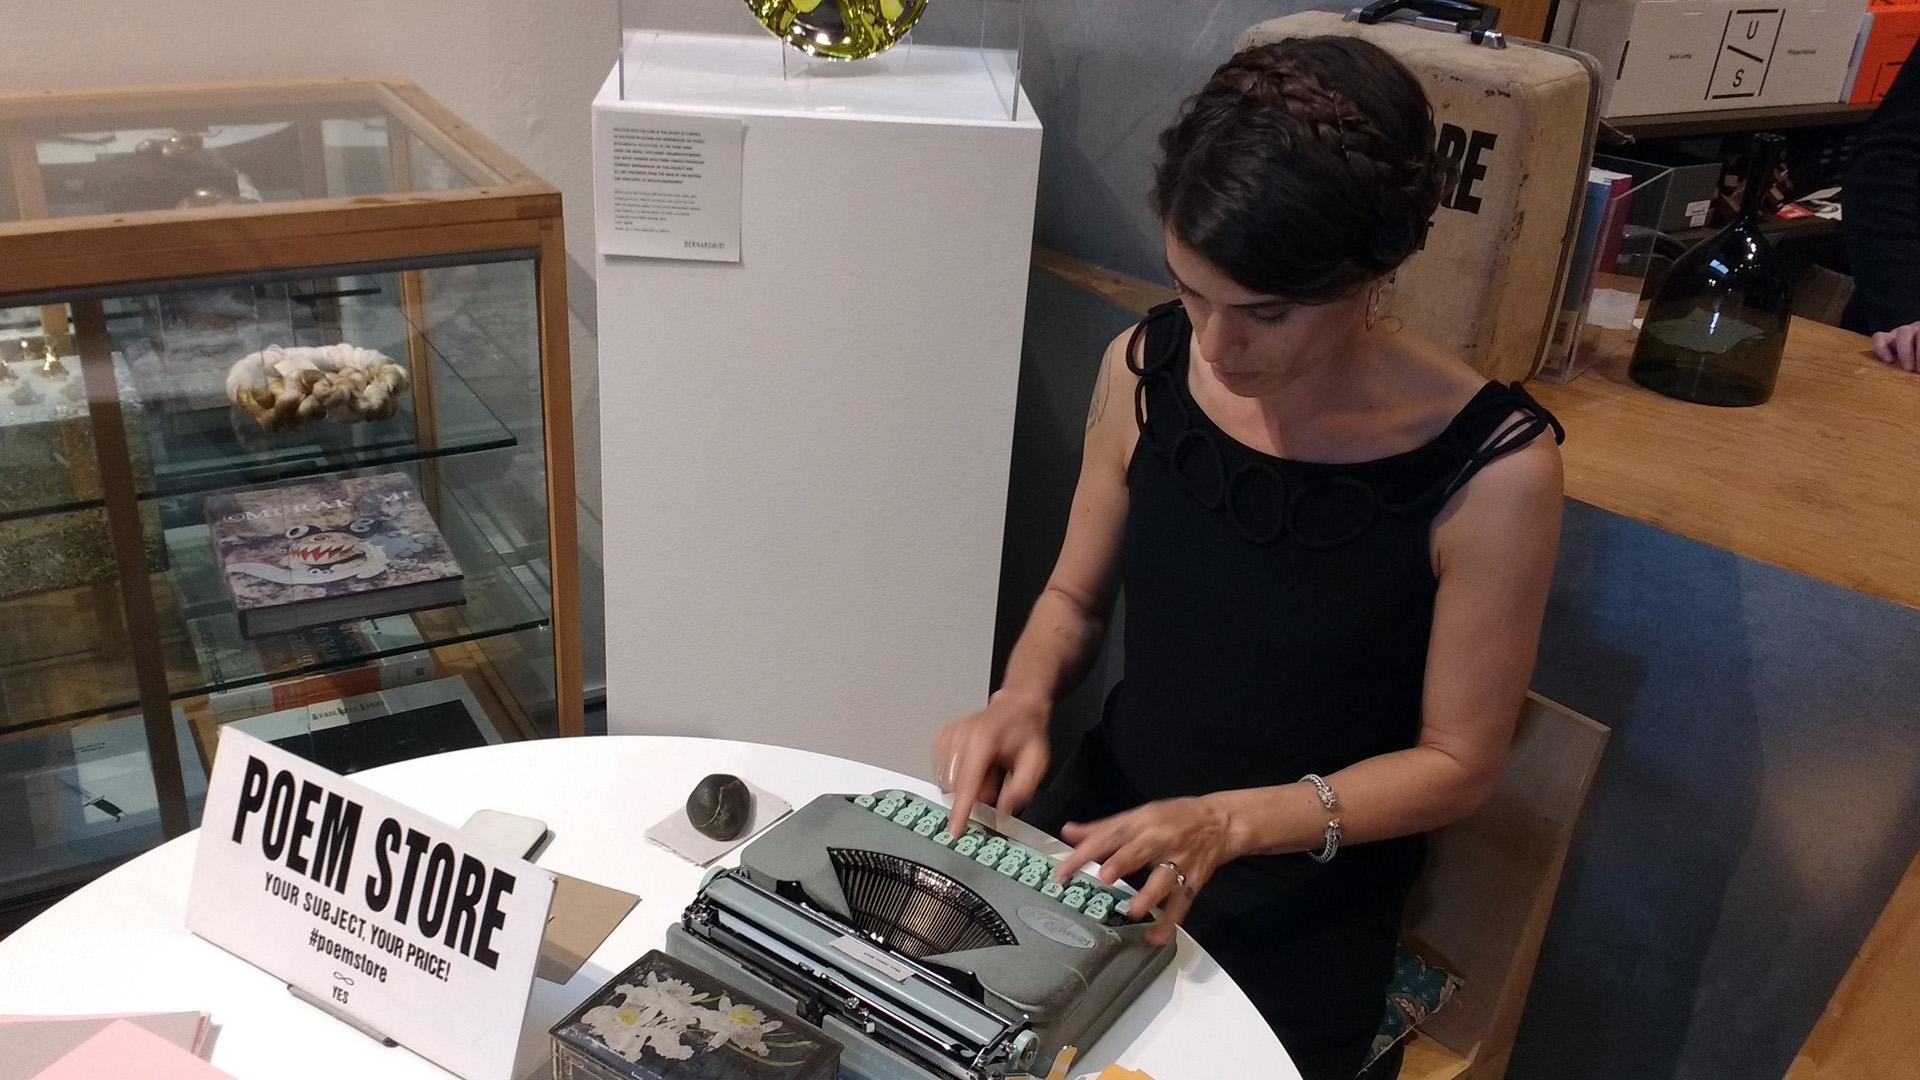 Jacqueline Suskin in the bookstore at The Geffen Contemporary at MOCA during the LA Art Book Fair. Suskin is typing a poem on a tiny piece of newsprint on an old, manual typewriter